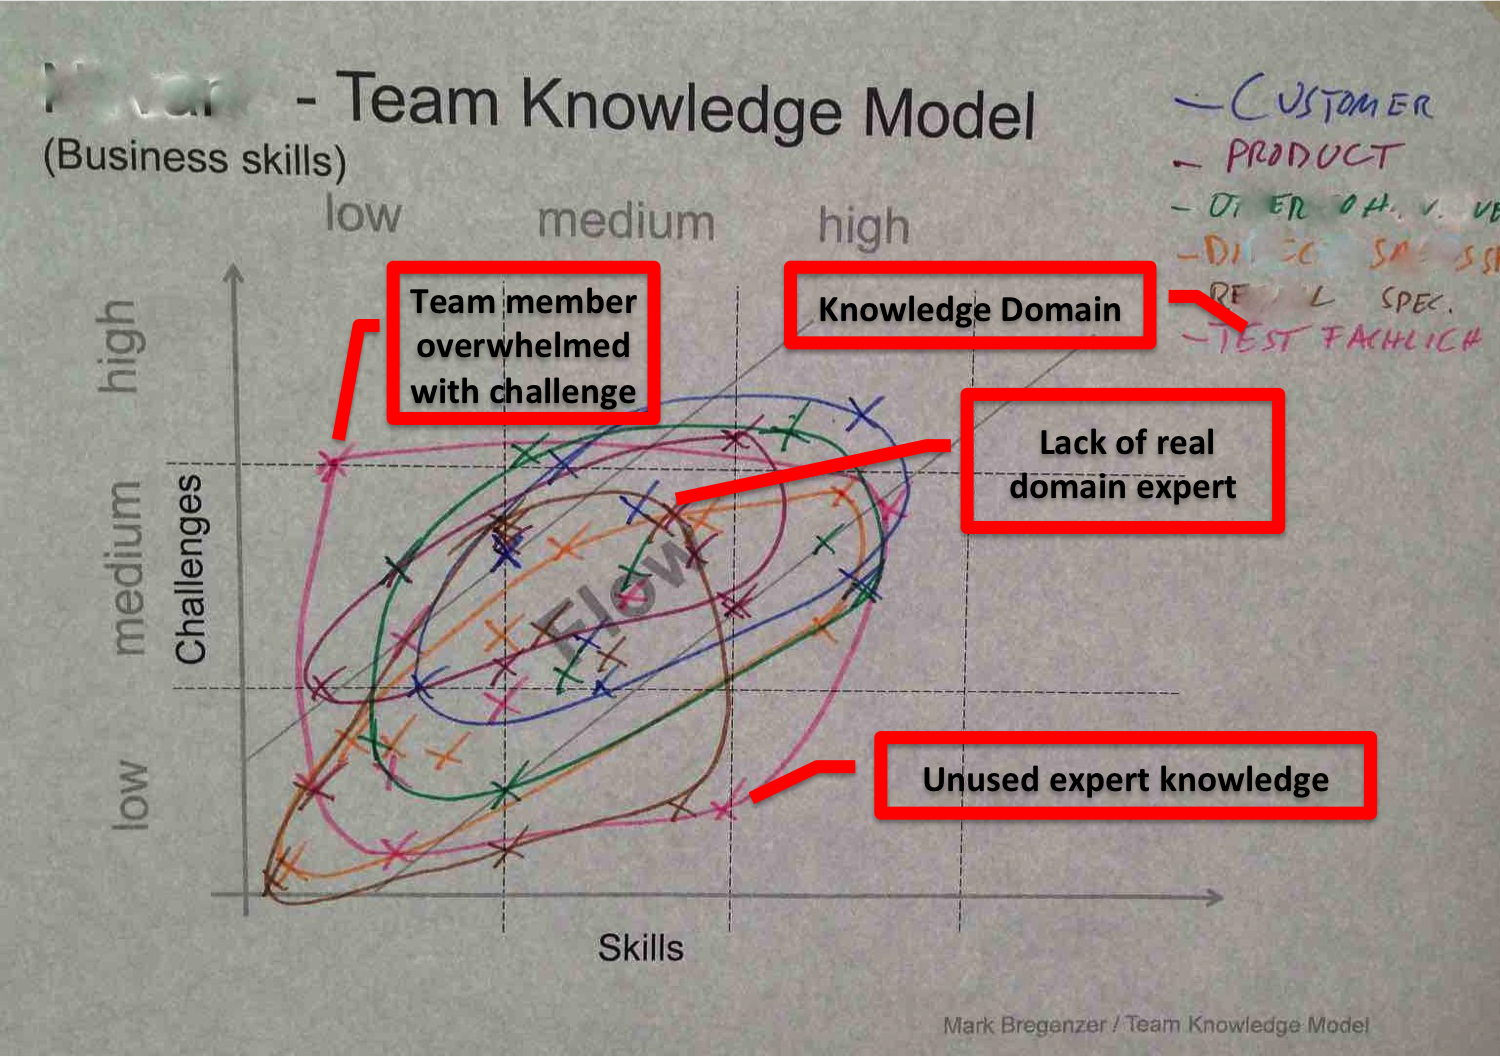 team-knowledge-model-example.png